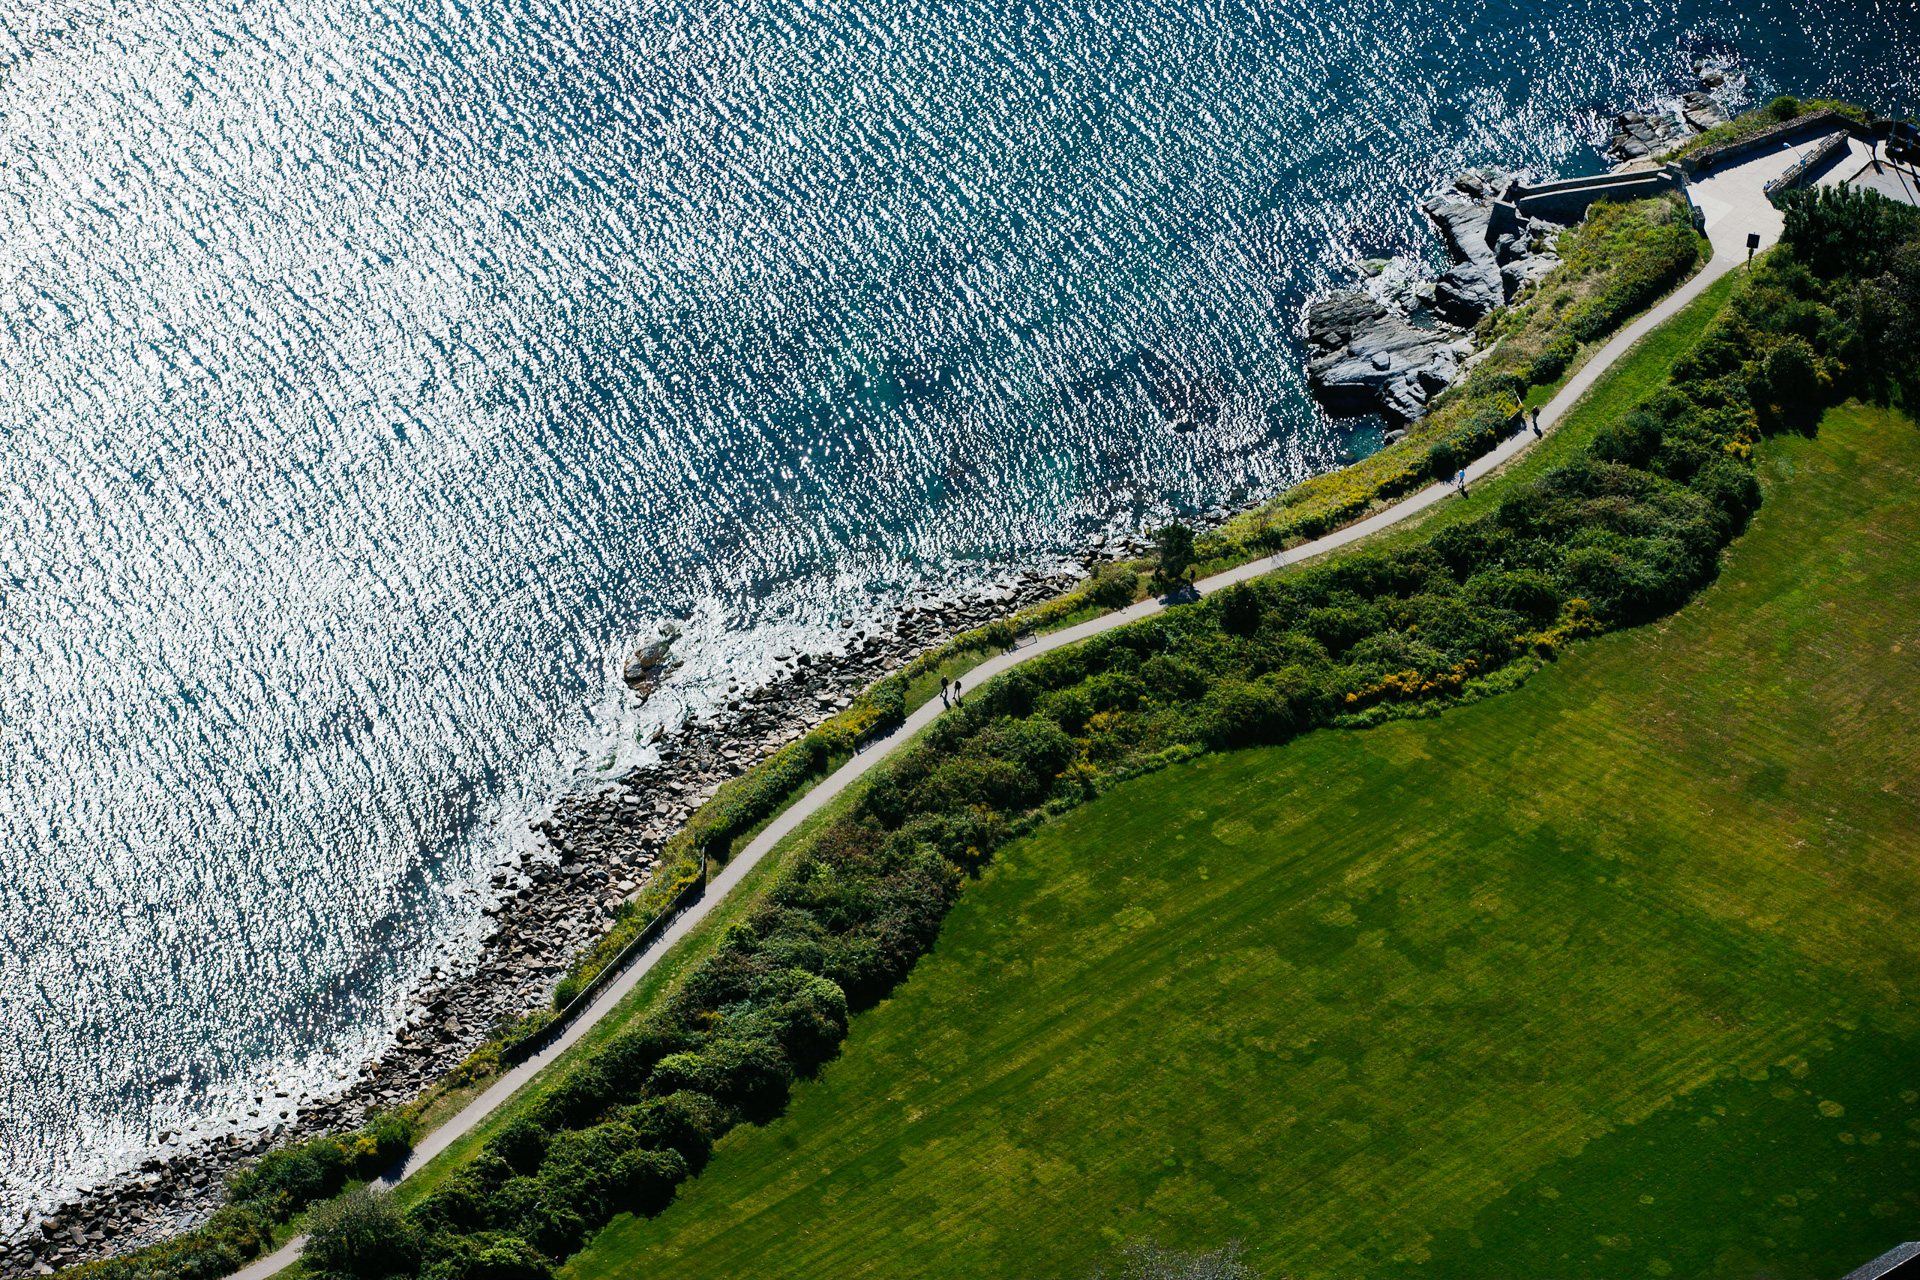 Newport, RI, USA - Aerial view of Cliffwalk at Forty steps